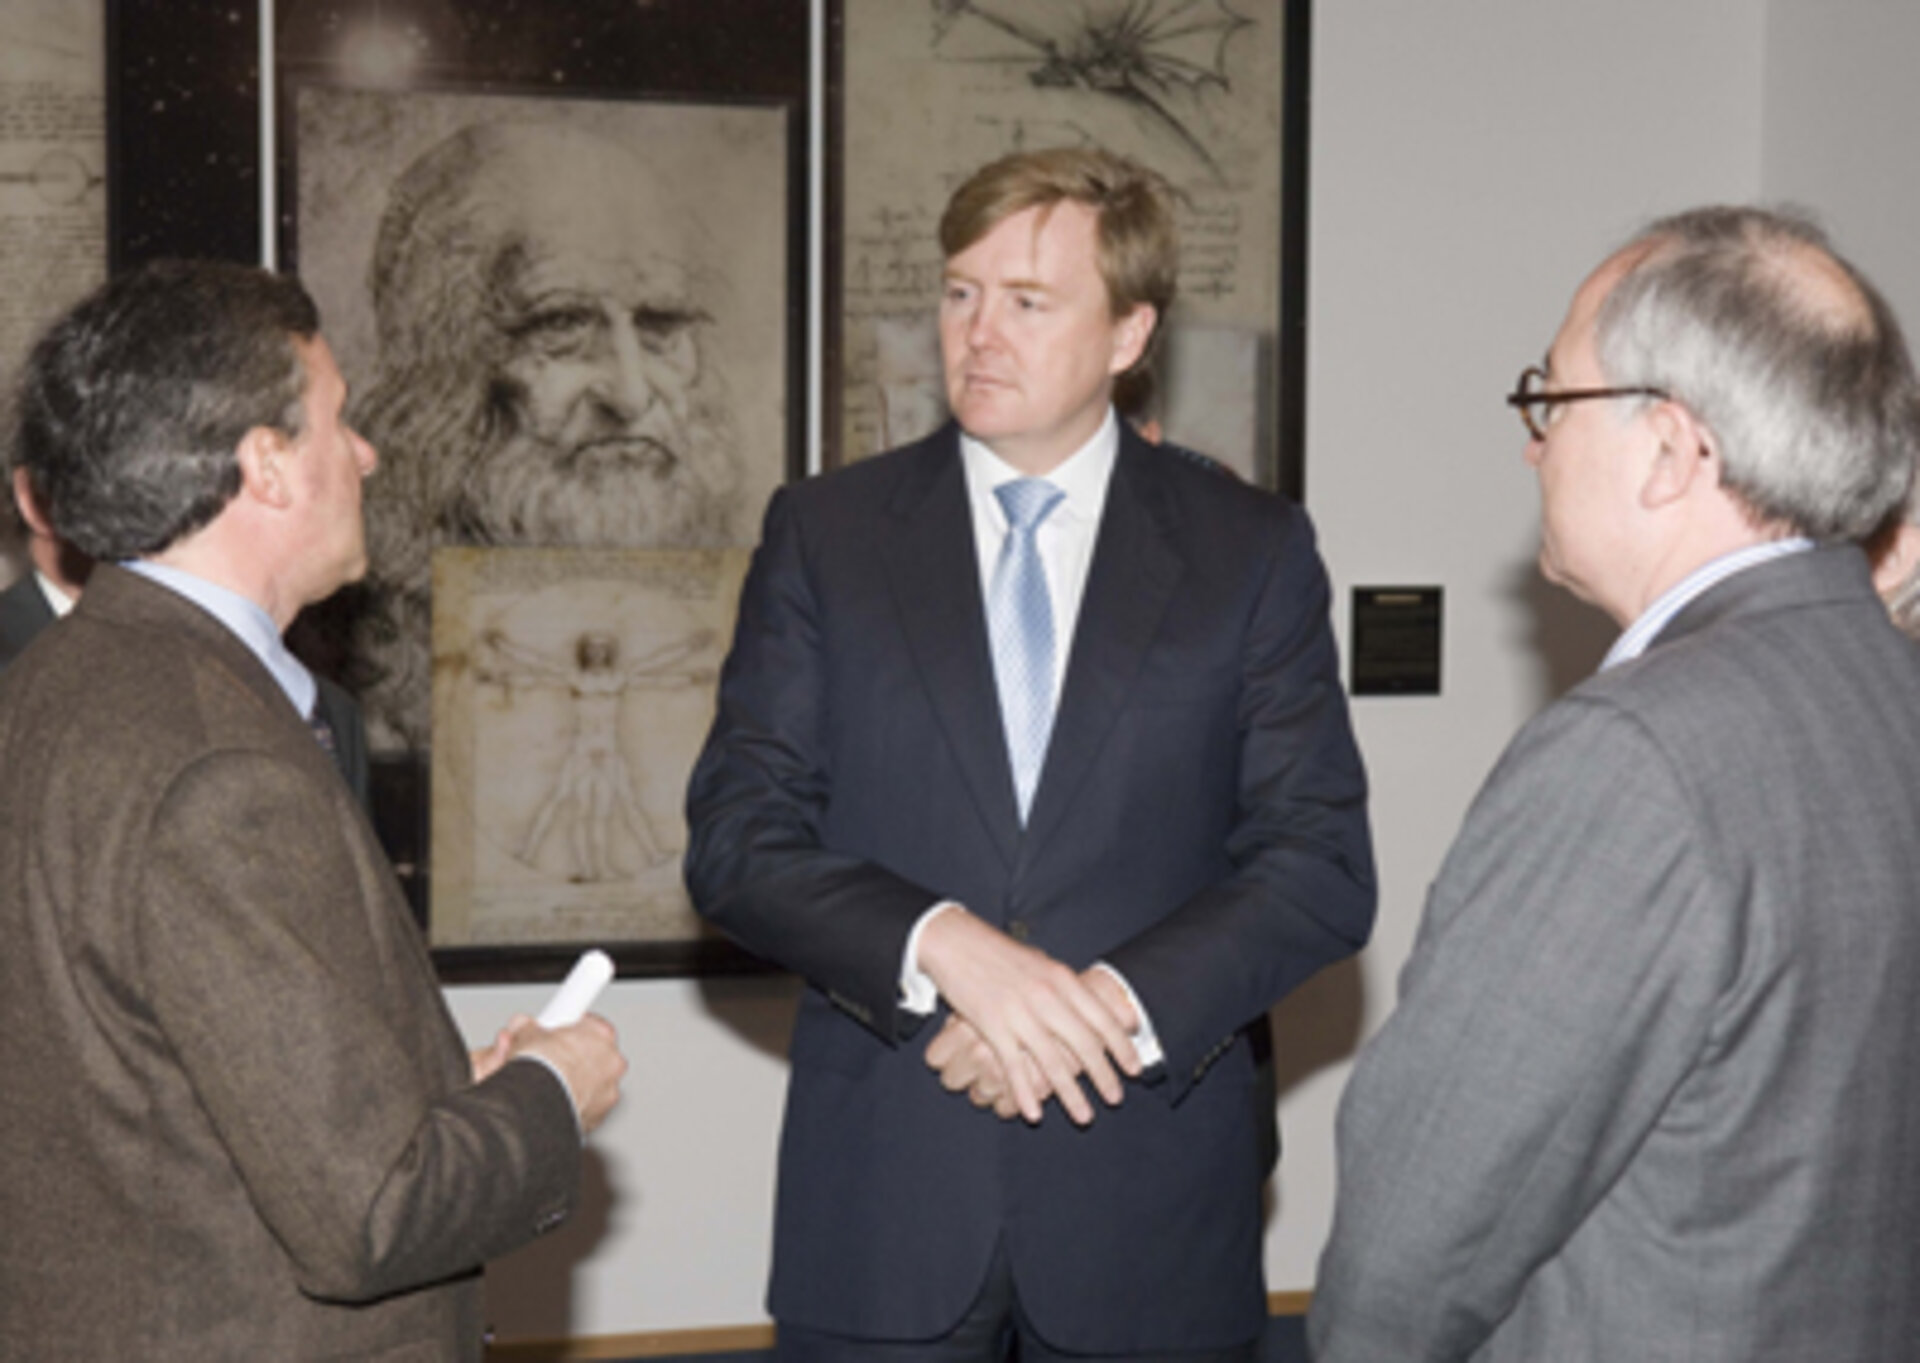 Massimo Bandecchi greets Prince Willem Alexander